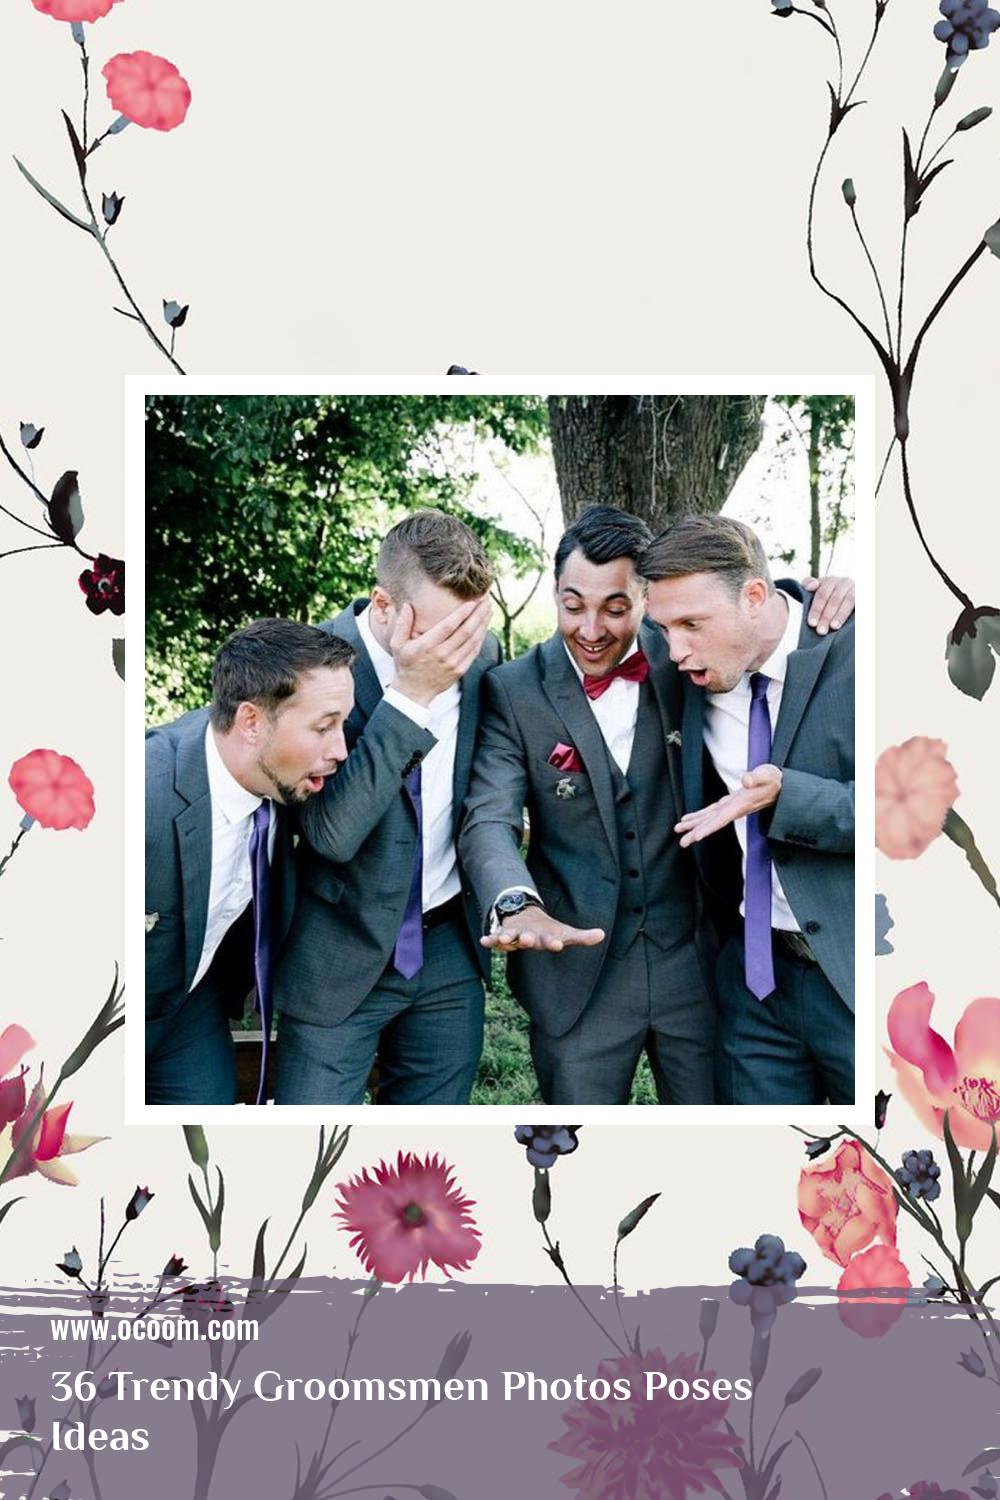 36 Trendy Groomsmen Photos Poses Ideas 14